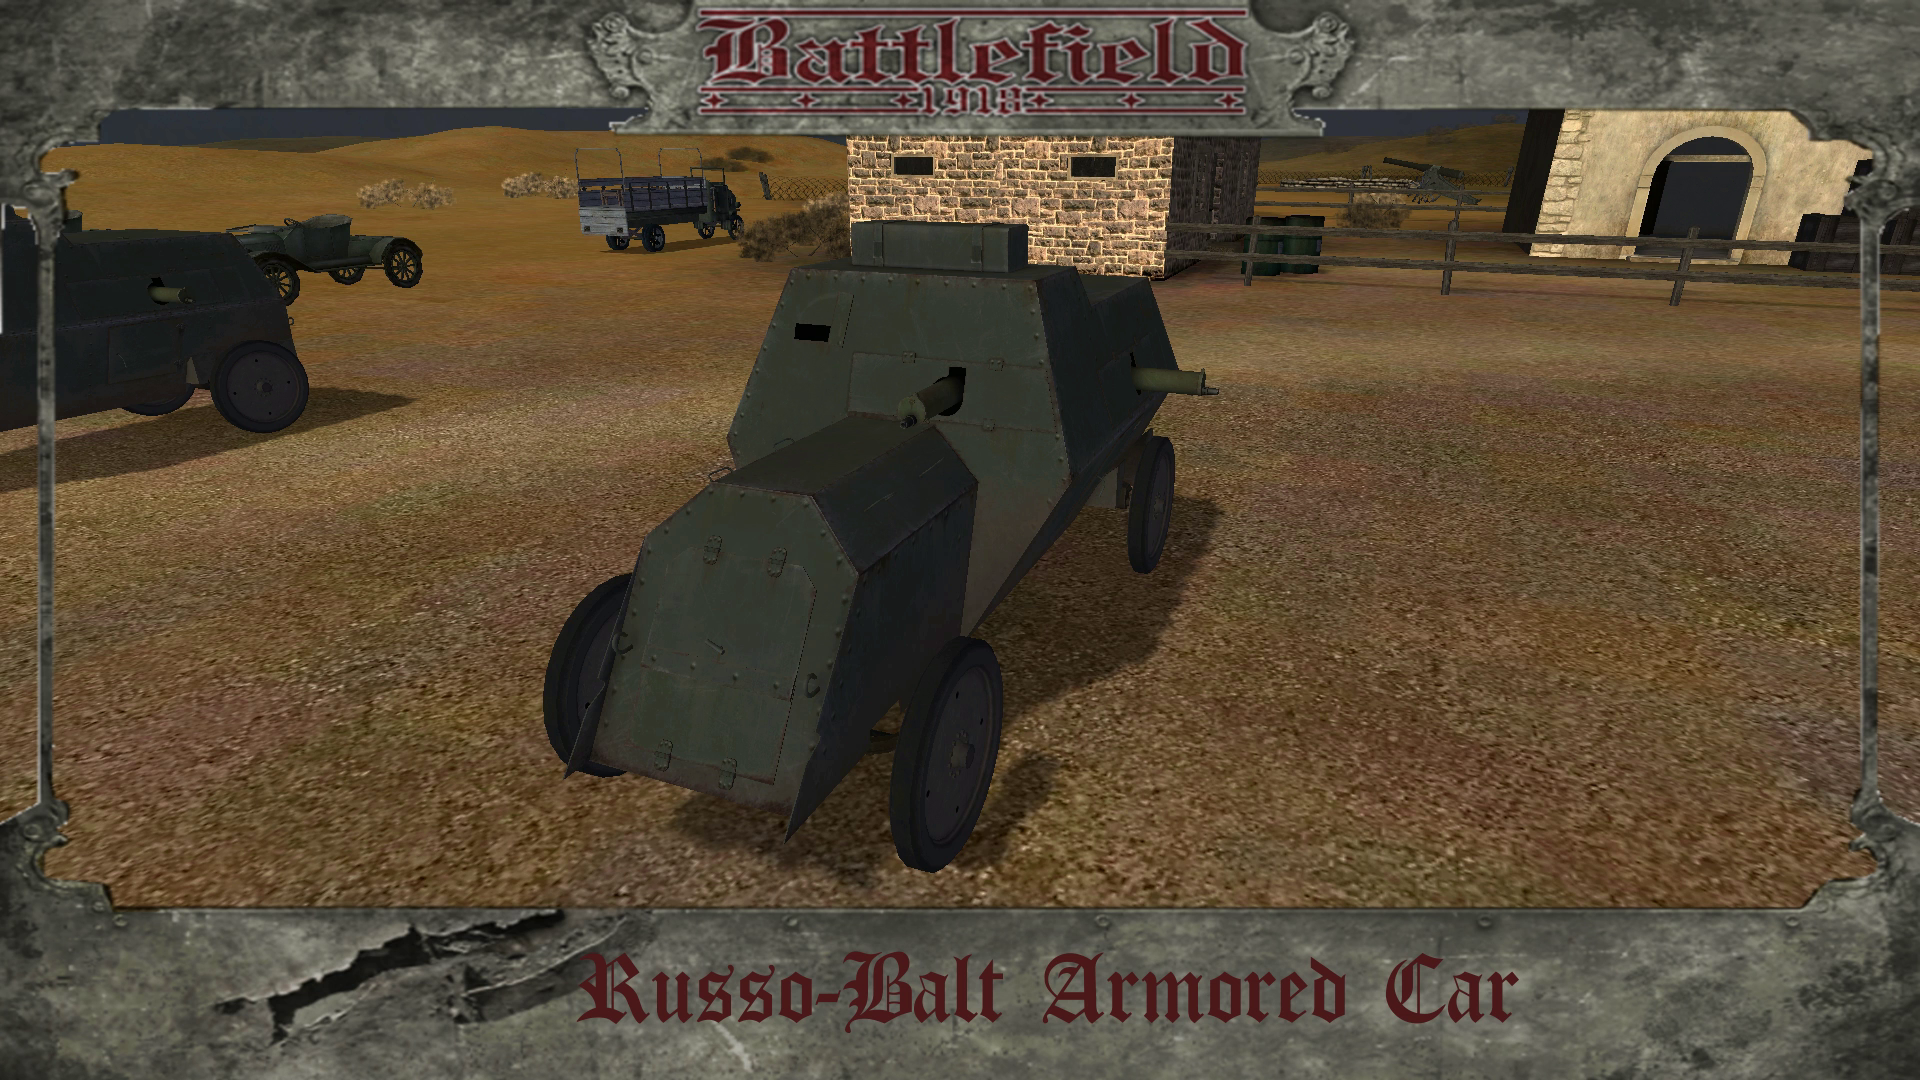 Russo Balt Armored Car